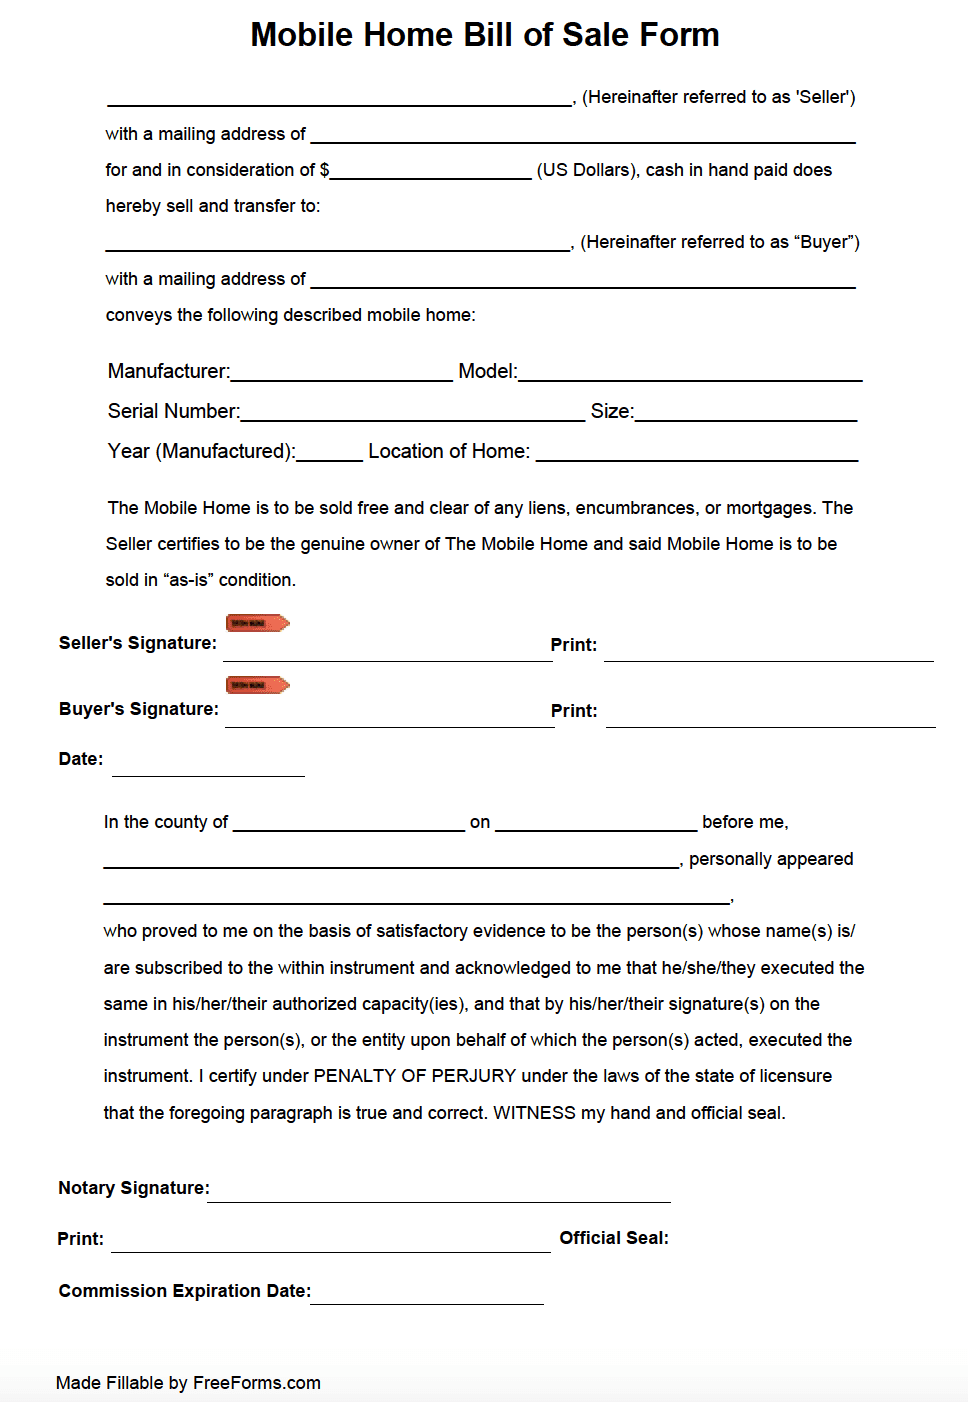 A Mobile Home Bill Of Sale Form Integrates A Paper Transaction Record To The Sale Of A Manufactured Home Fo Contract Template Mobile Home Bill Of Sale Template